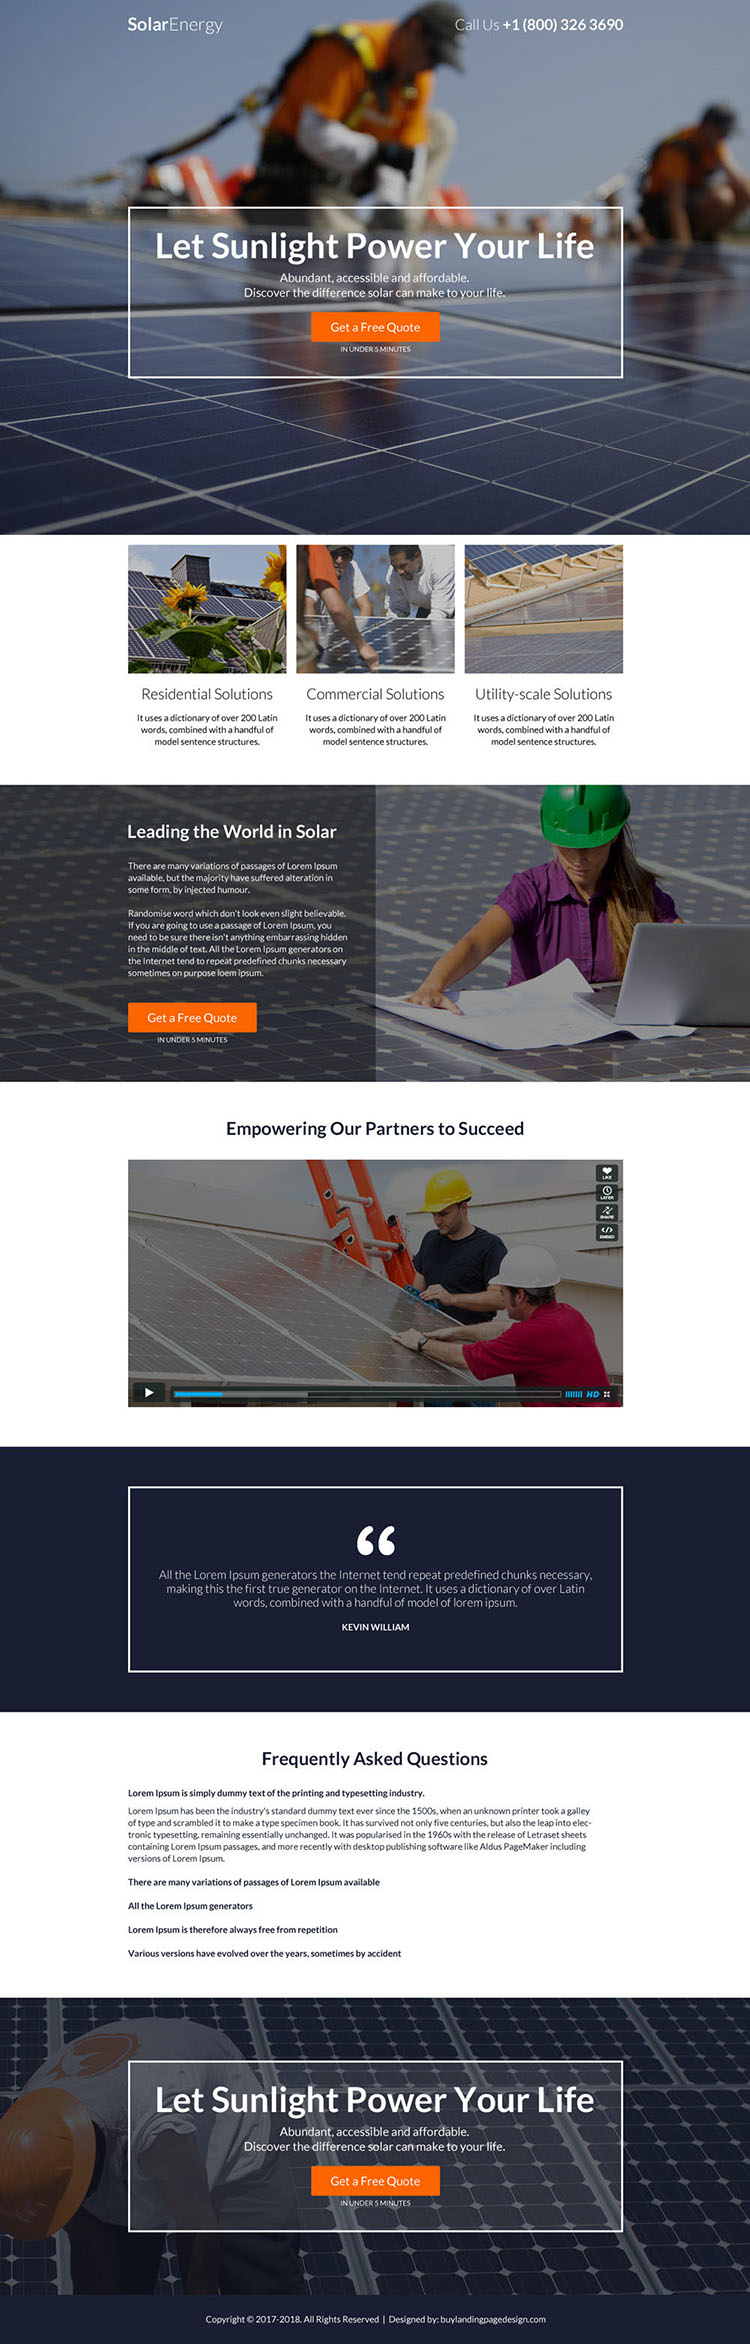 solar energy residential solutions landing page design